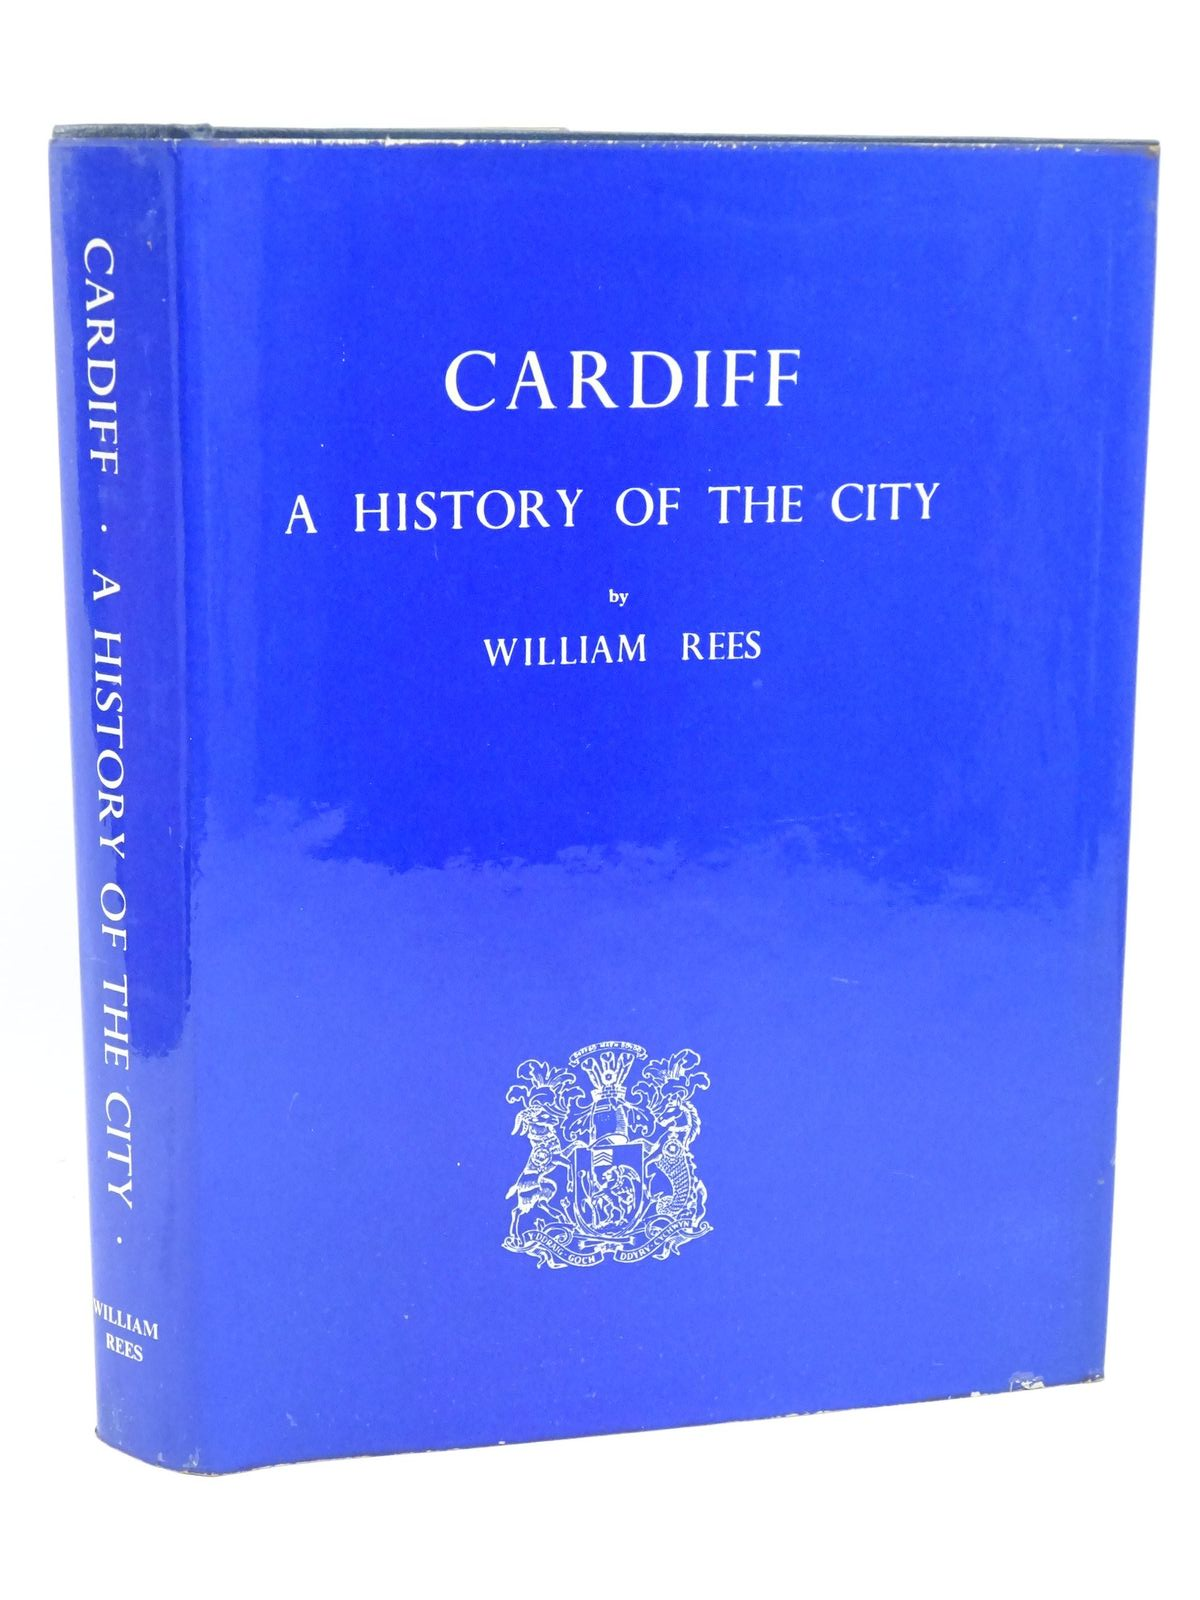 Photo of CARDIFF A HISTORY OF THE CITY written by Rees, William published by The Corporation of Cardiff (STOCK CODE: 1317982)  for sale by Stella & Rose's Books